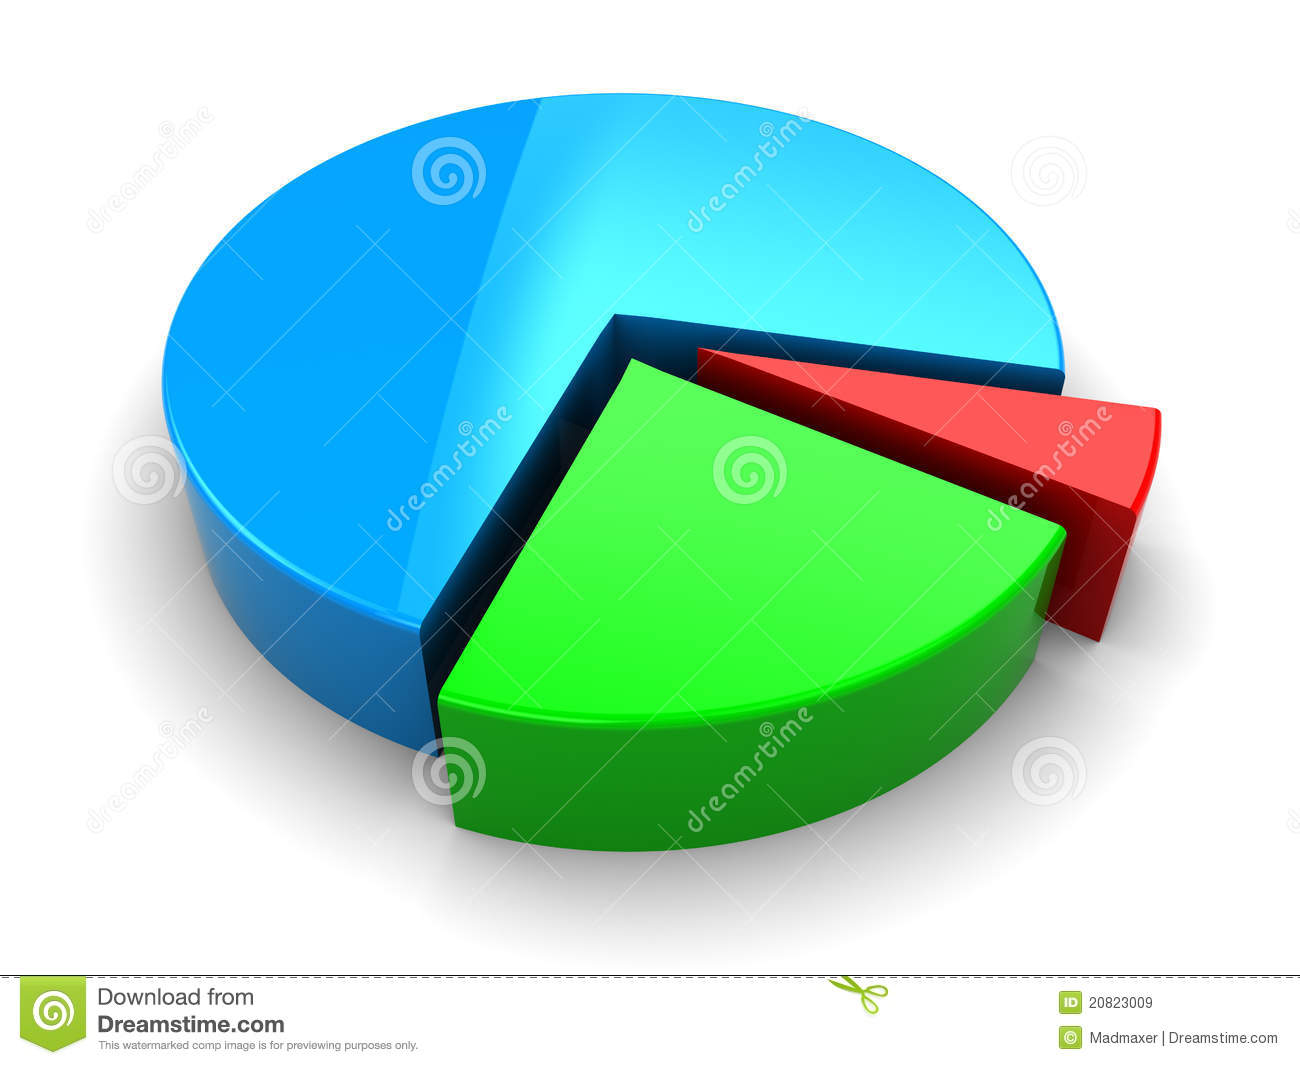 d pie diagram royalty free stock images   image    d pie diagram